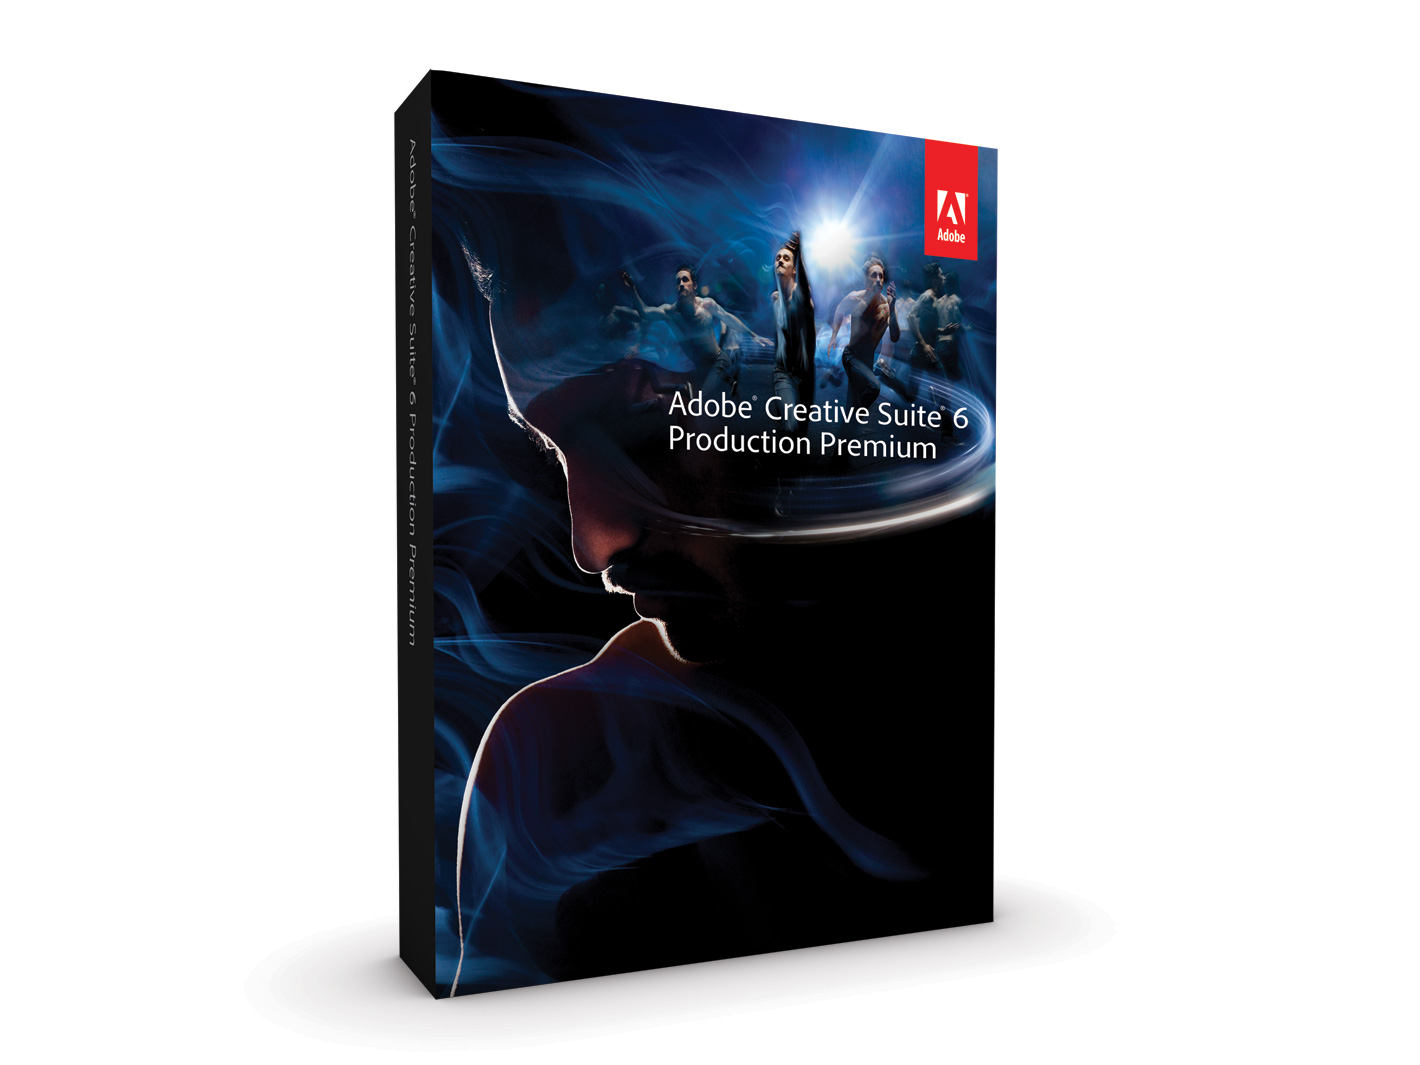 Adobe Creative Suite 6 (CS6) Production Premium